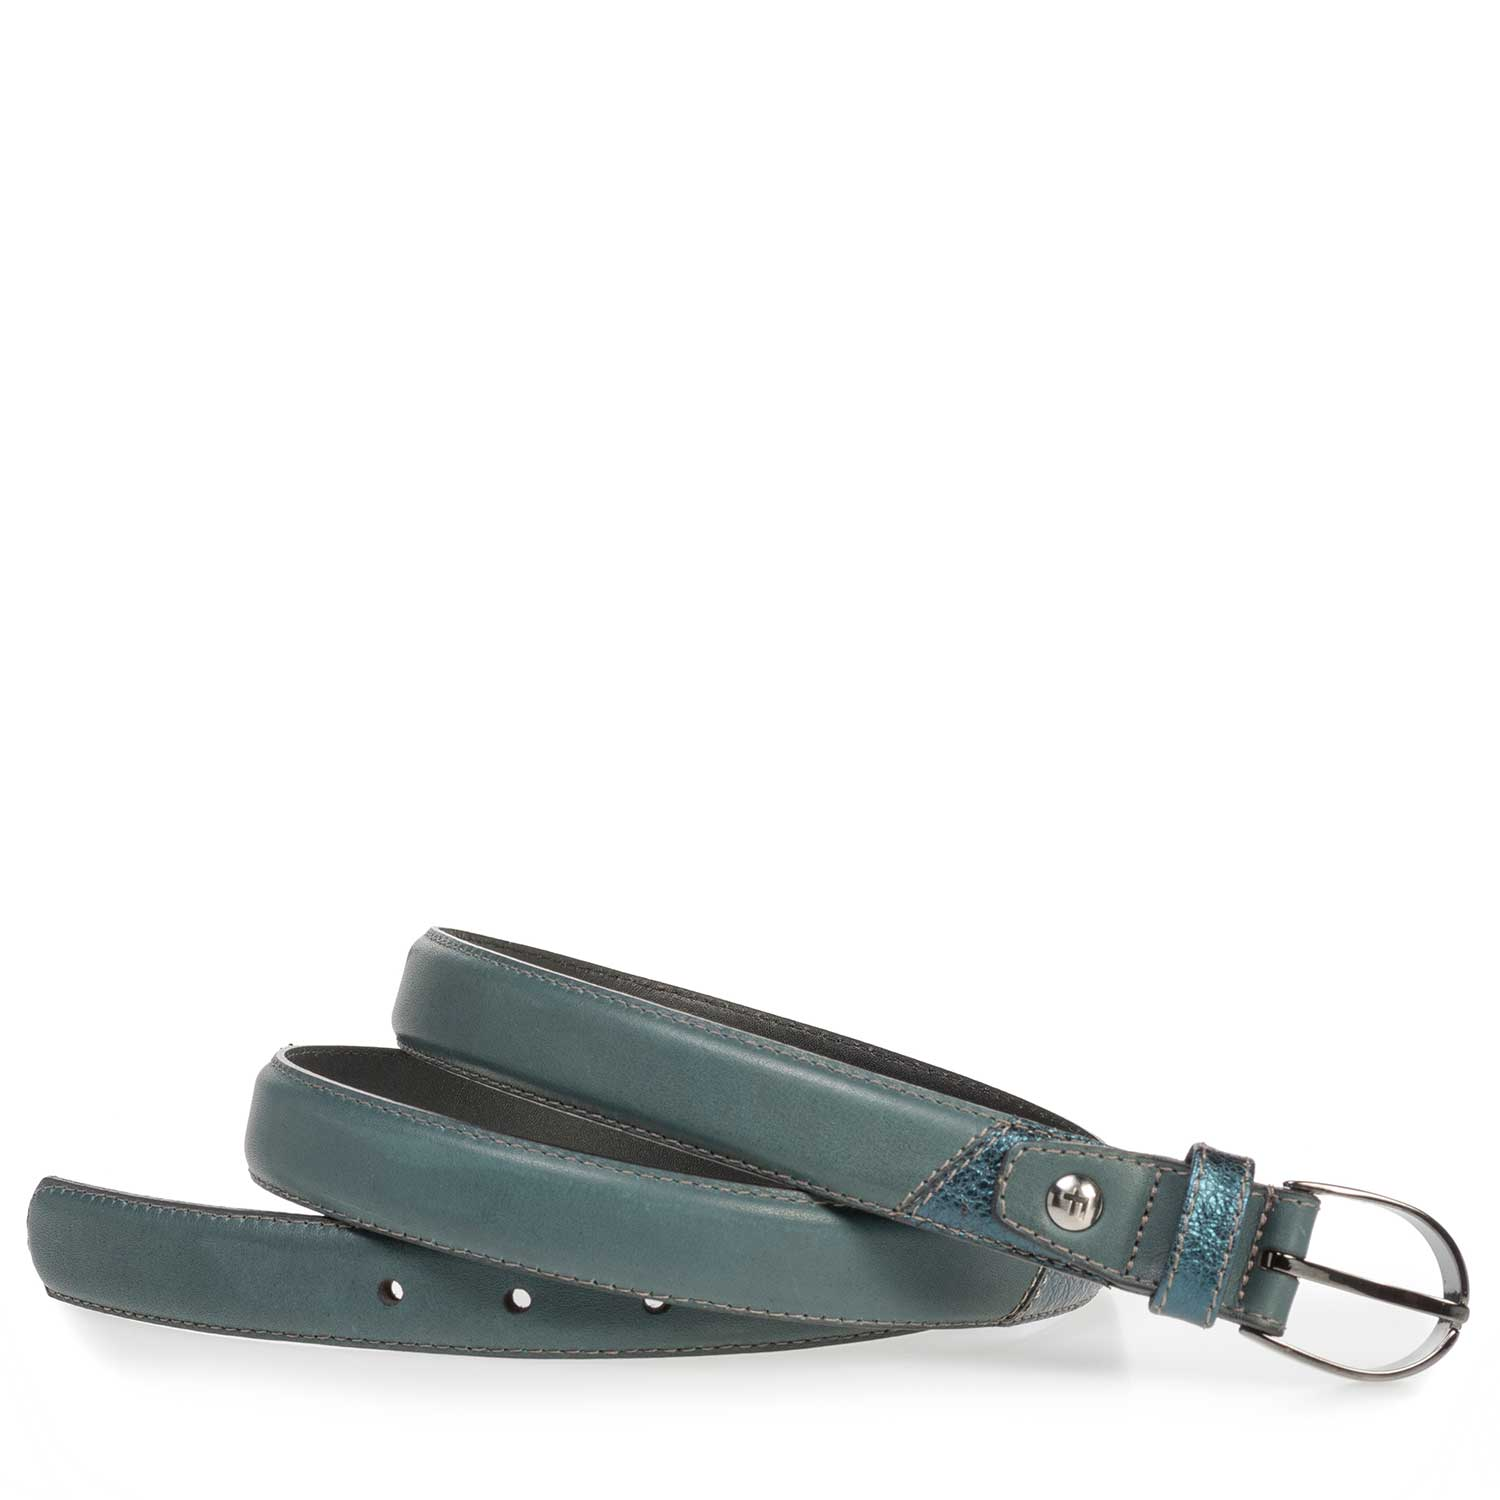 75814/12 - Green and blue calf leather belt